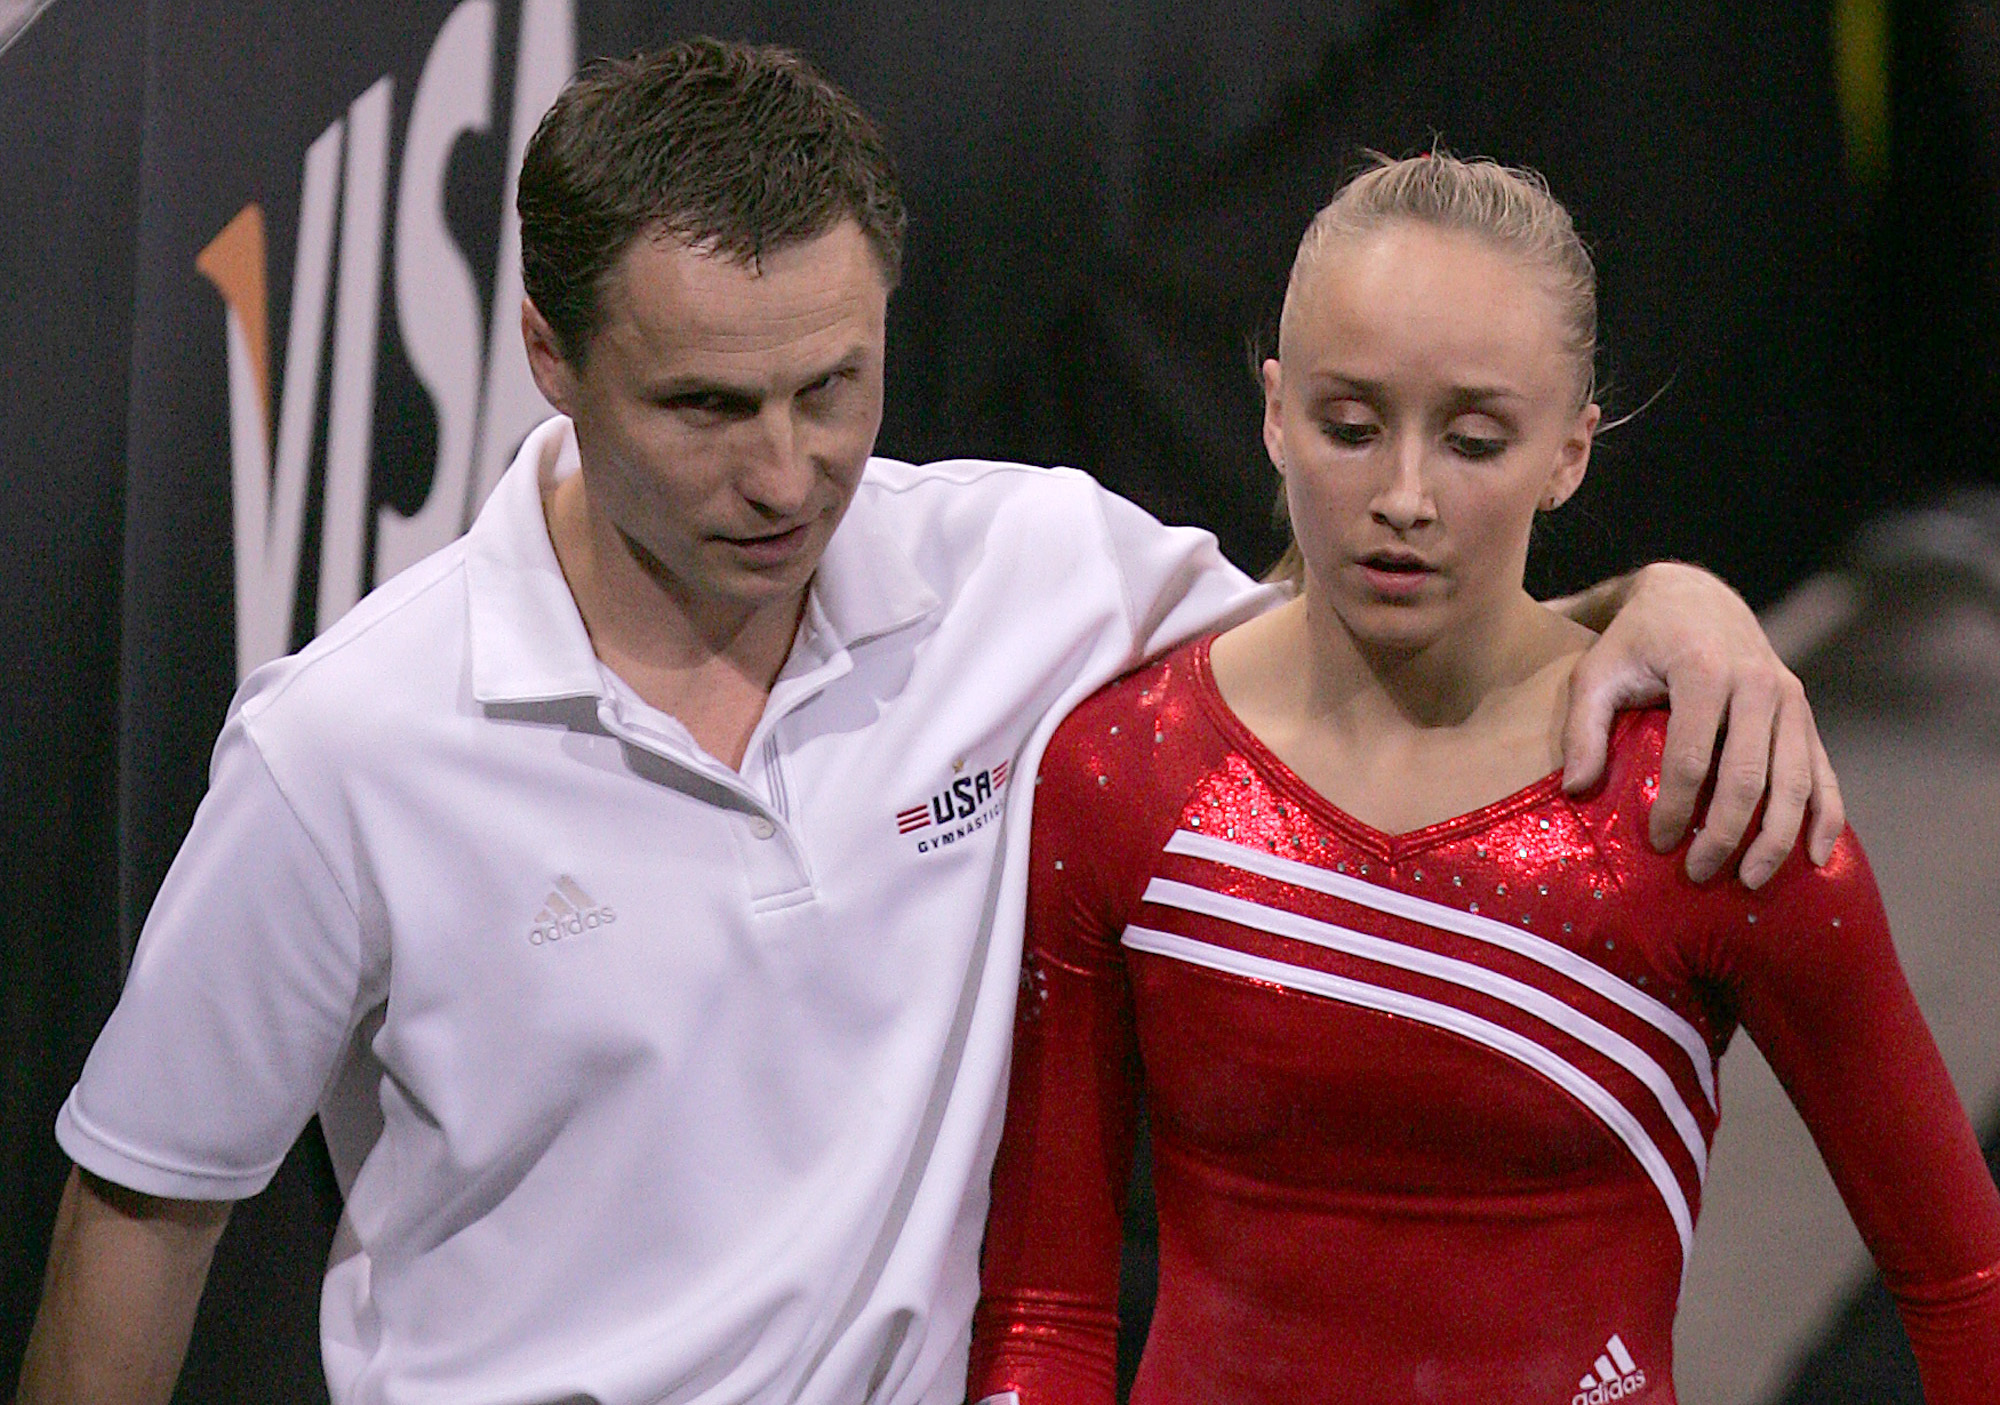 FILE - In this March 29, 2008 file photo Nastia Liukin, right, of the United States, is spoken to by her father and coach Valeri Liukin after she performed on the uneven bars at the Pacific Rim Gymnastics Championships in San Jose, Calif. USA Gymnastics d